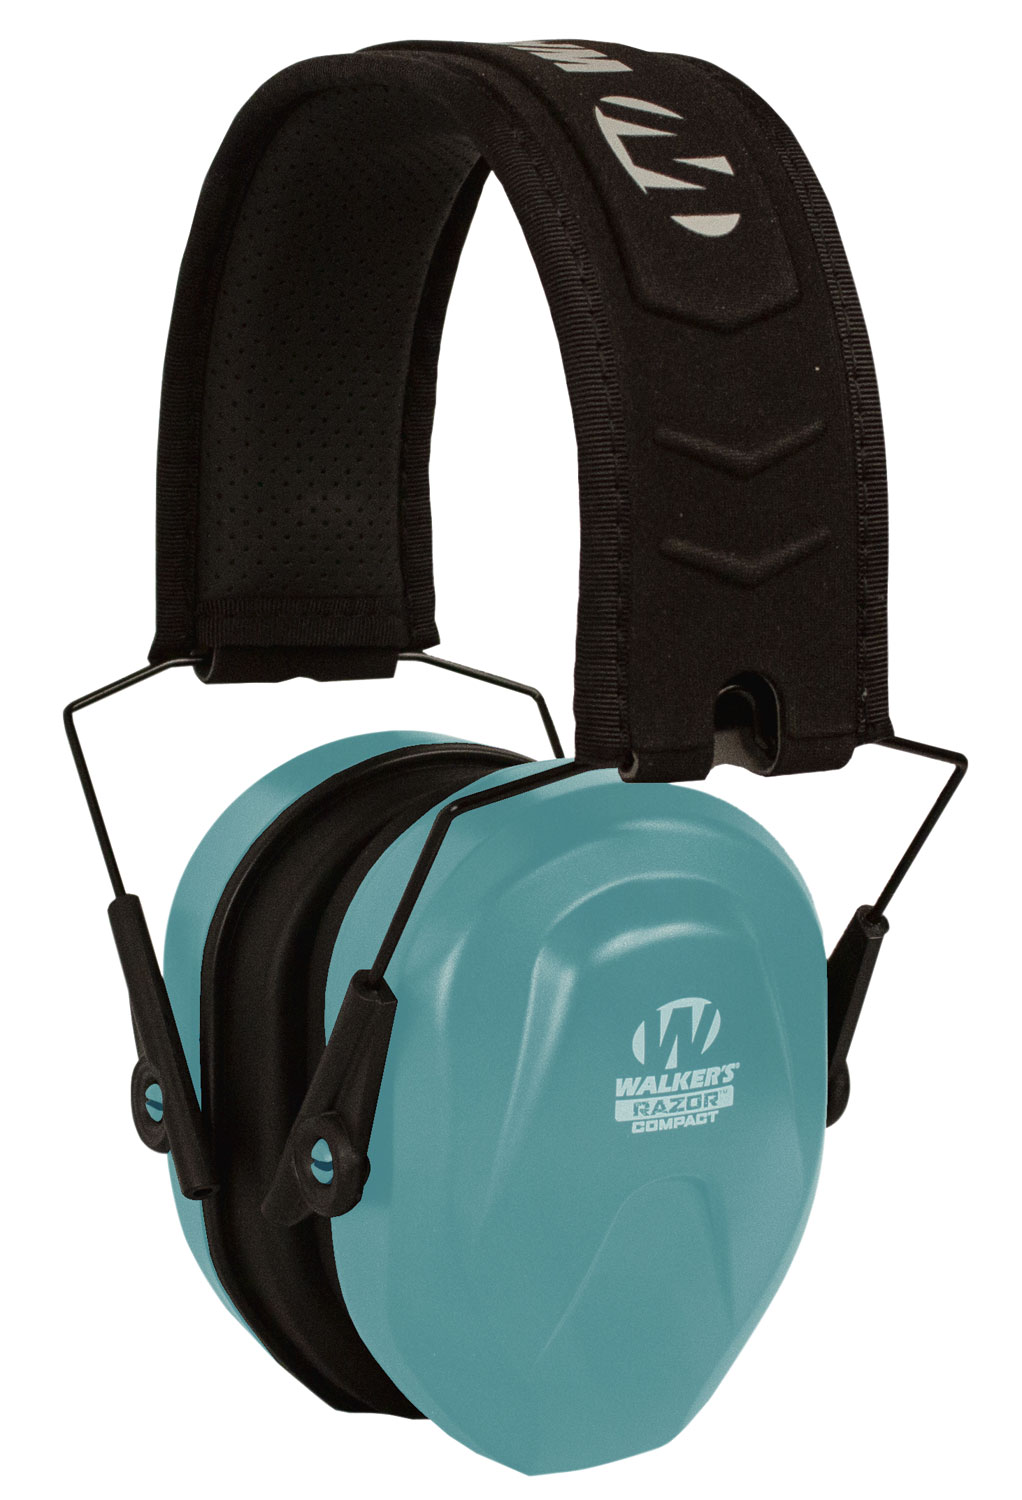 Walkers GWPCRPASBL Razor Compact Passive Muff 24 dB Over the Head Blue Ear Cups with Black Headband & White Logo Youth, Women